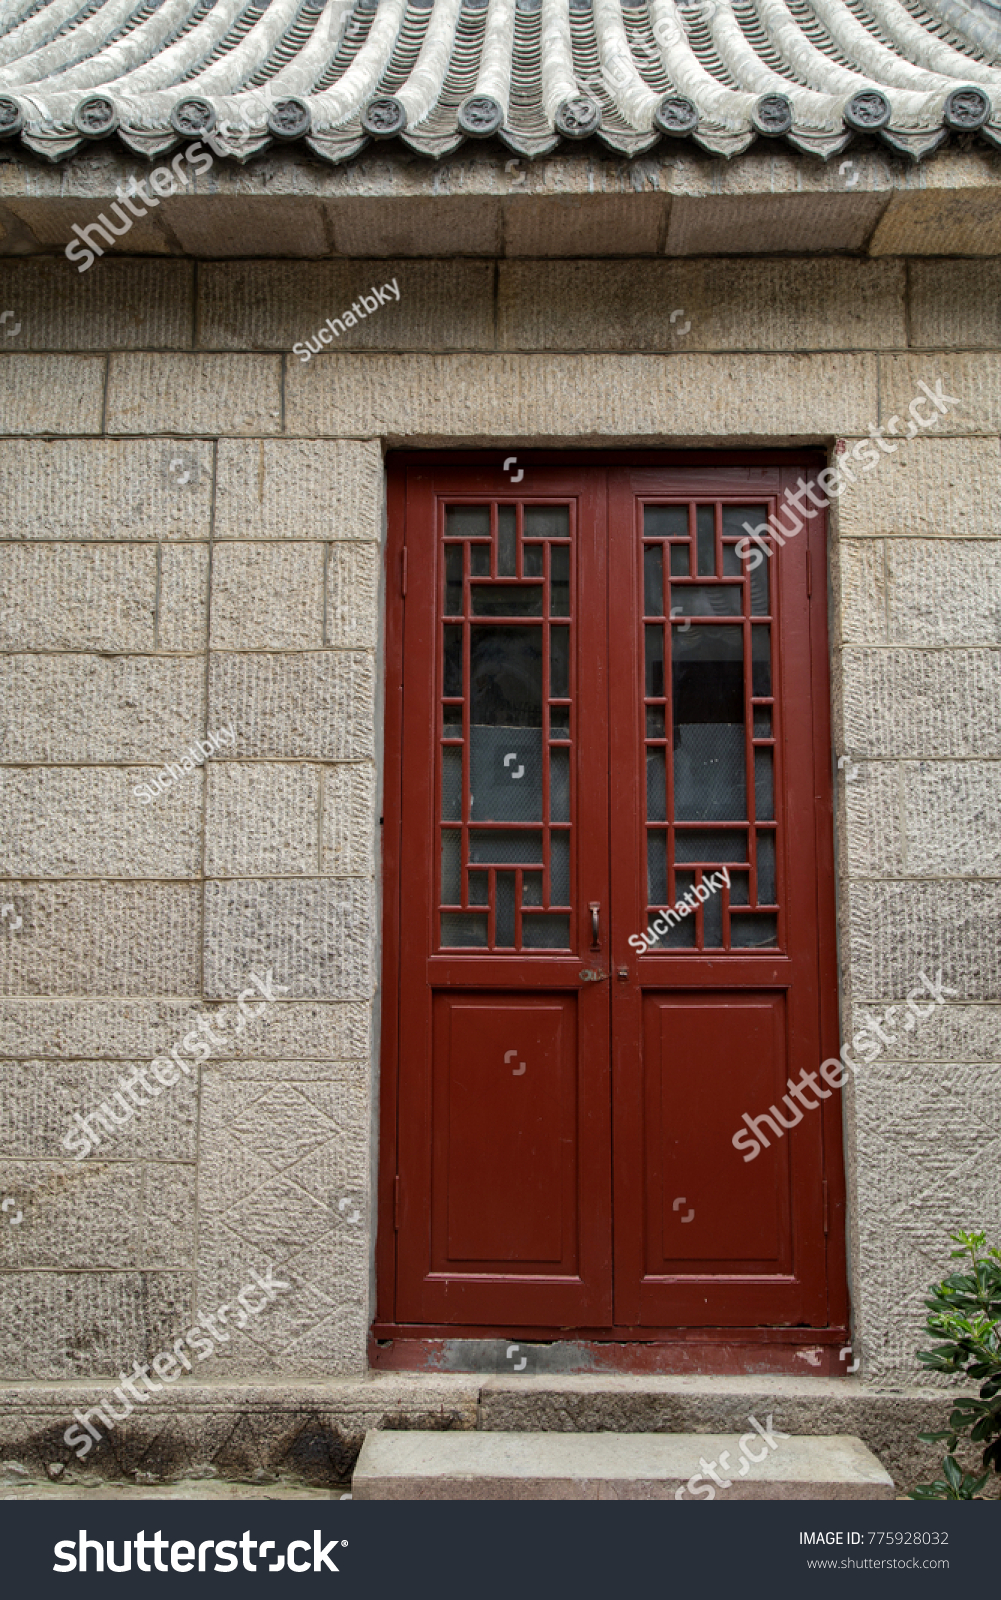 Door Of A Typical New England Residential House With Small Entrance